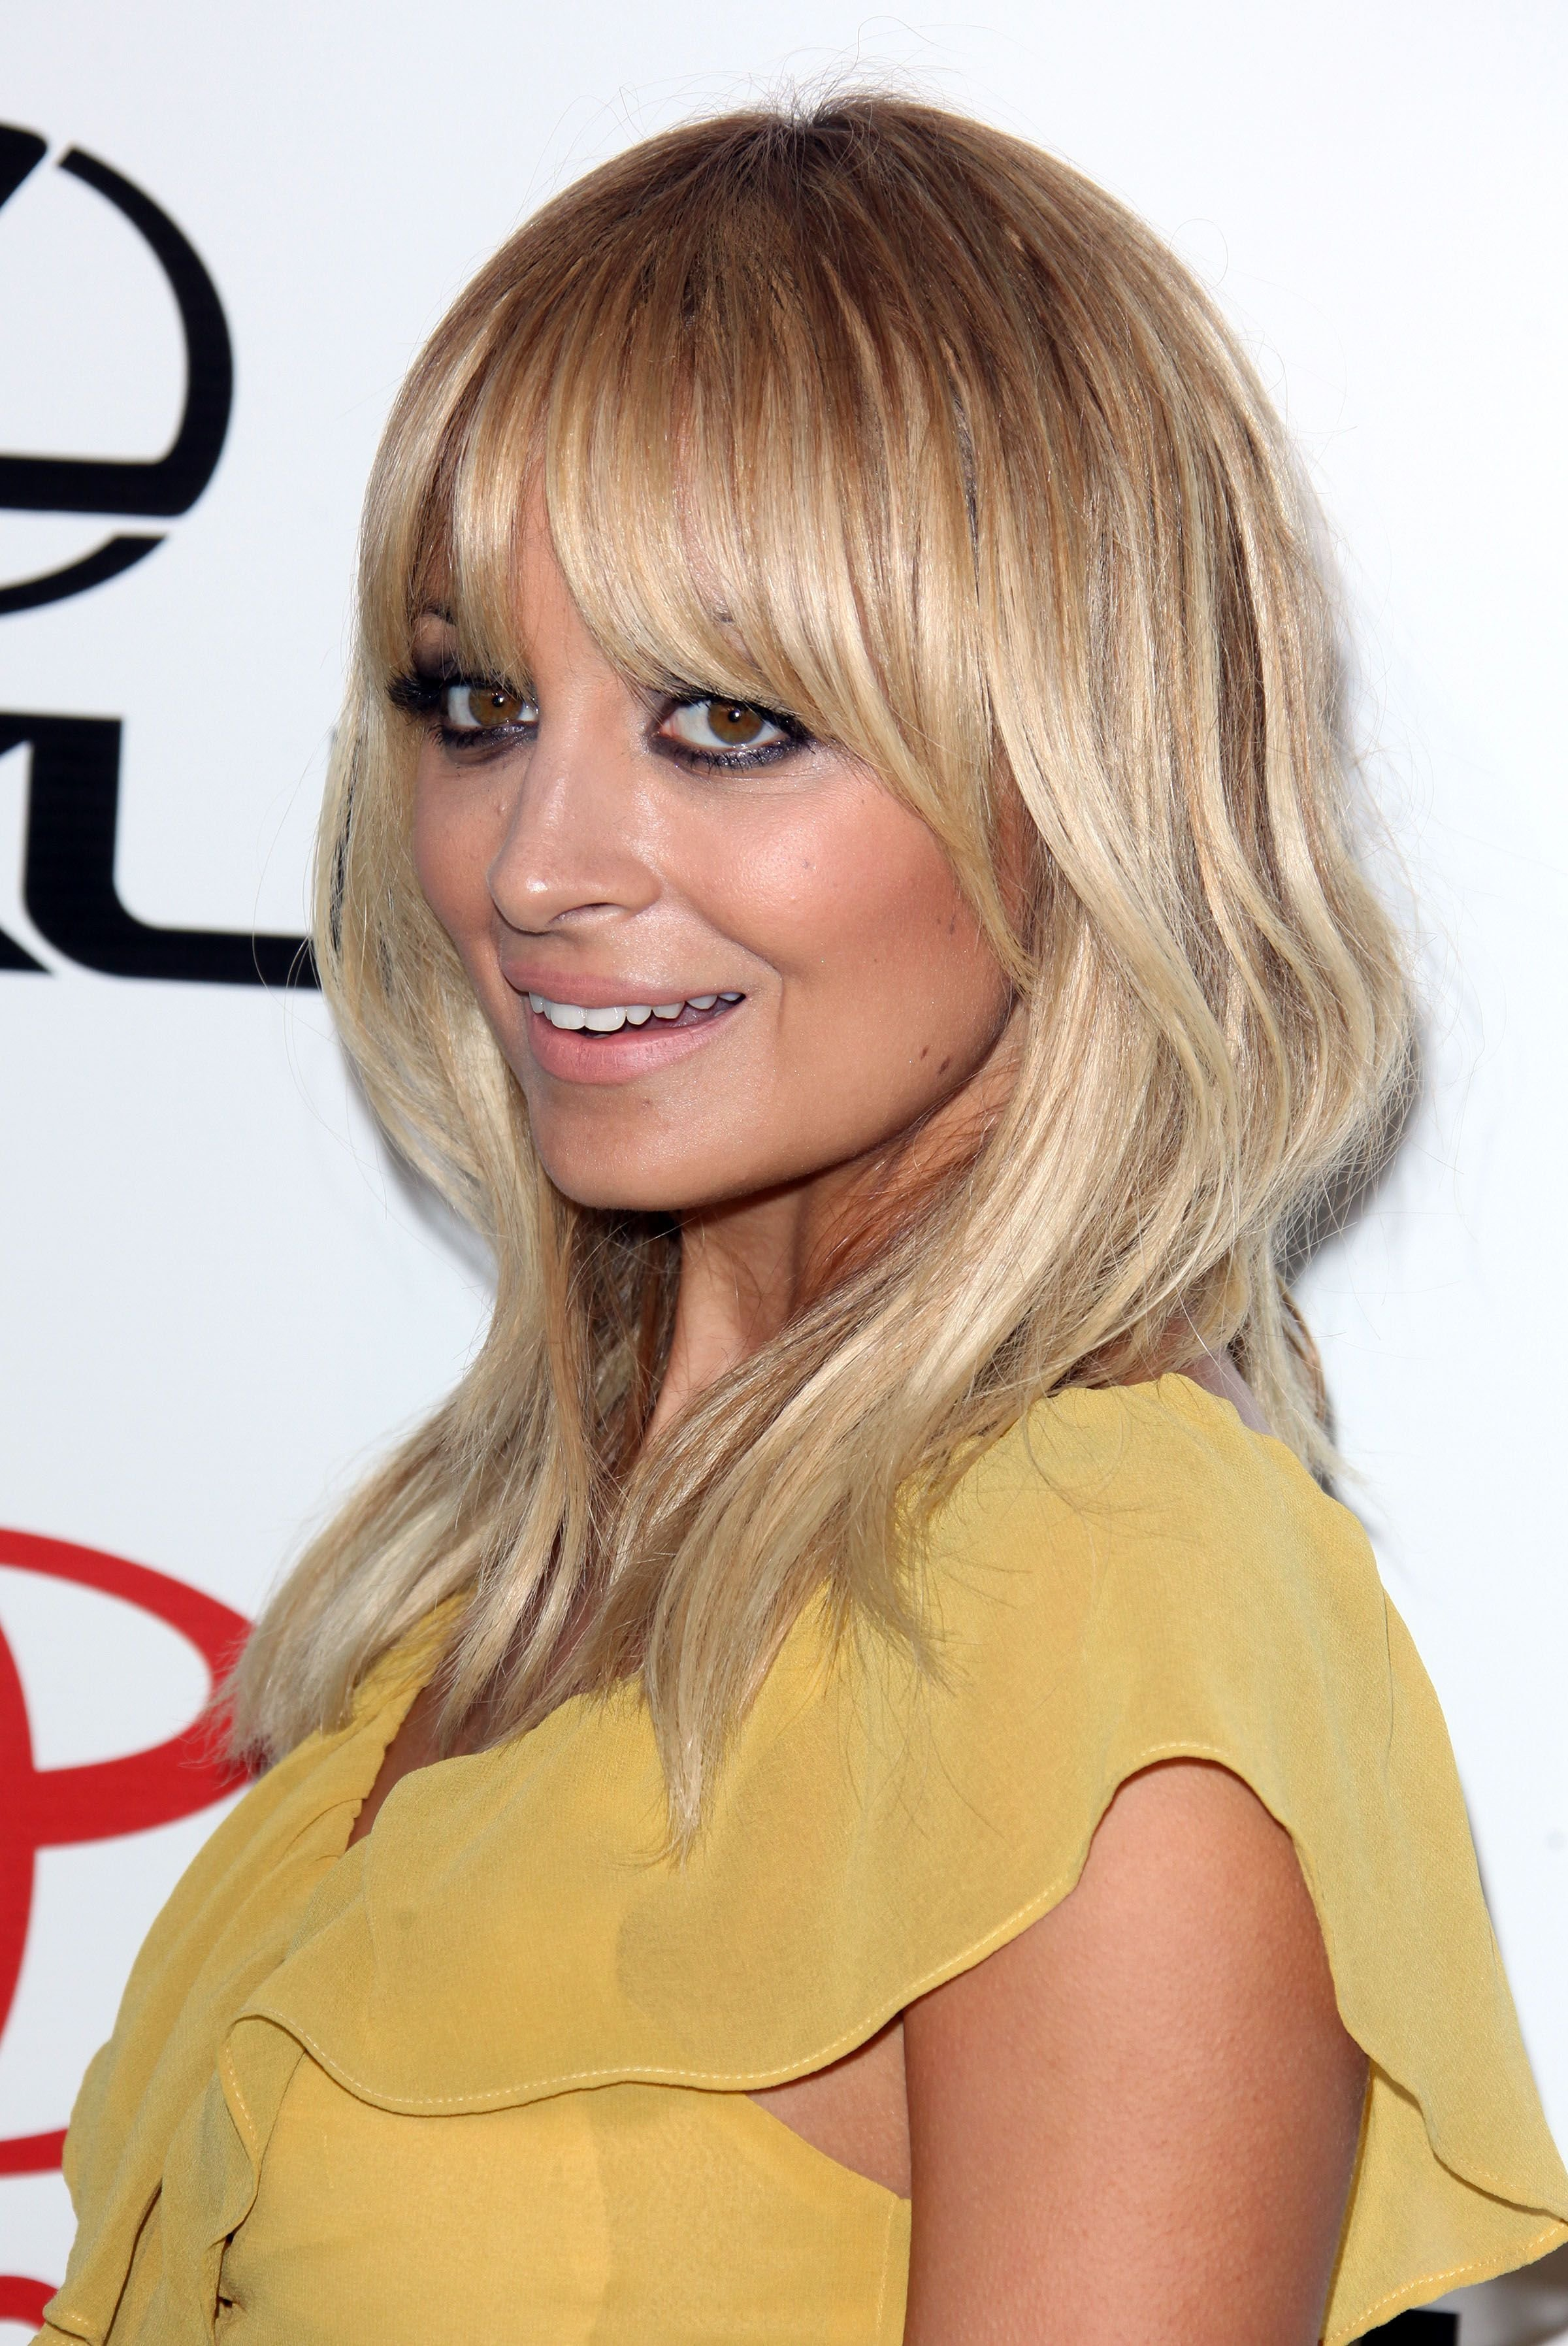 The Best Below Shoulder Length Hairstyles With Bangsflattering Pictures